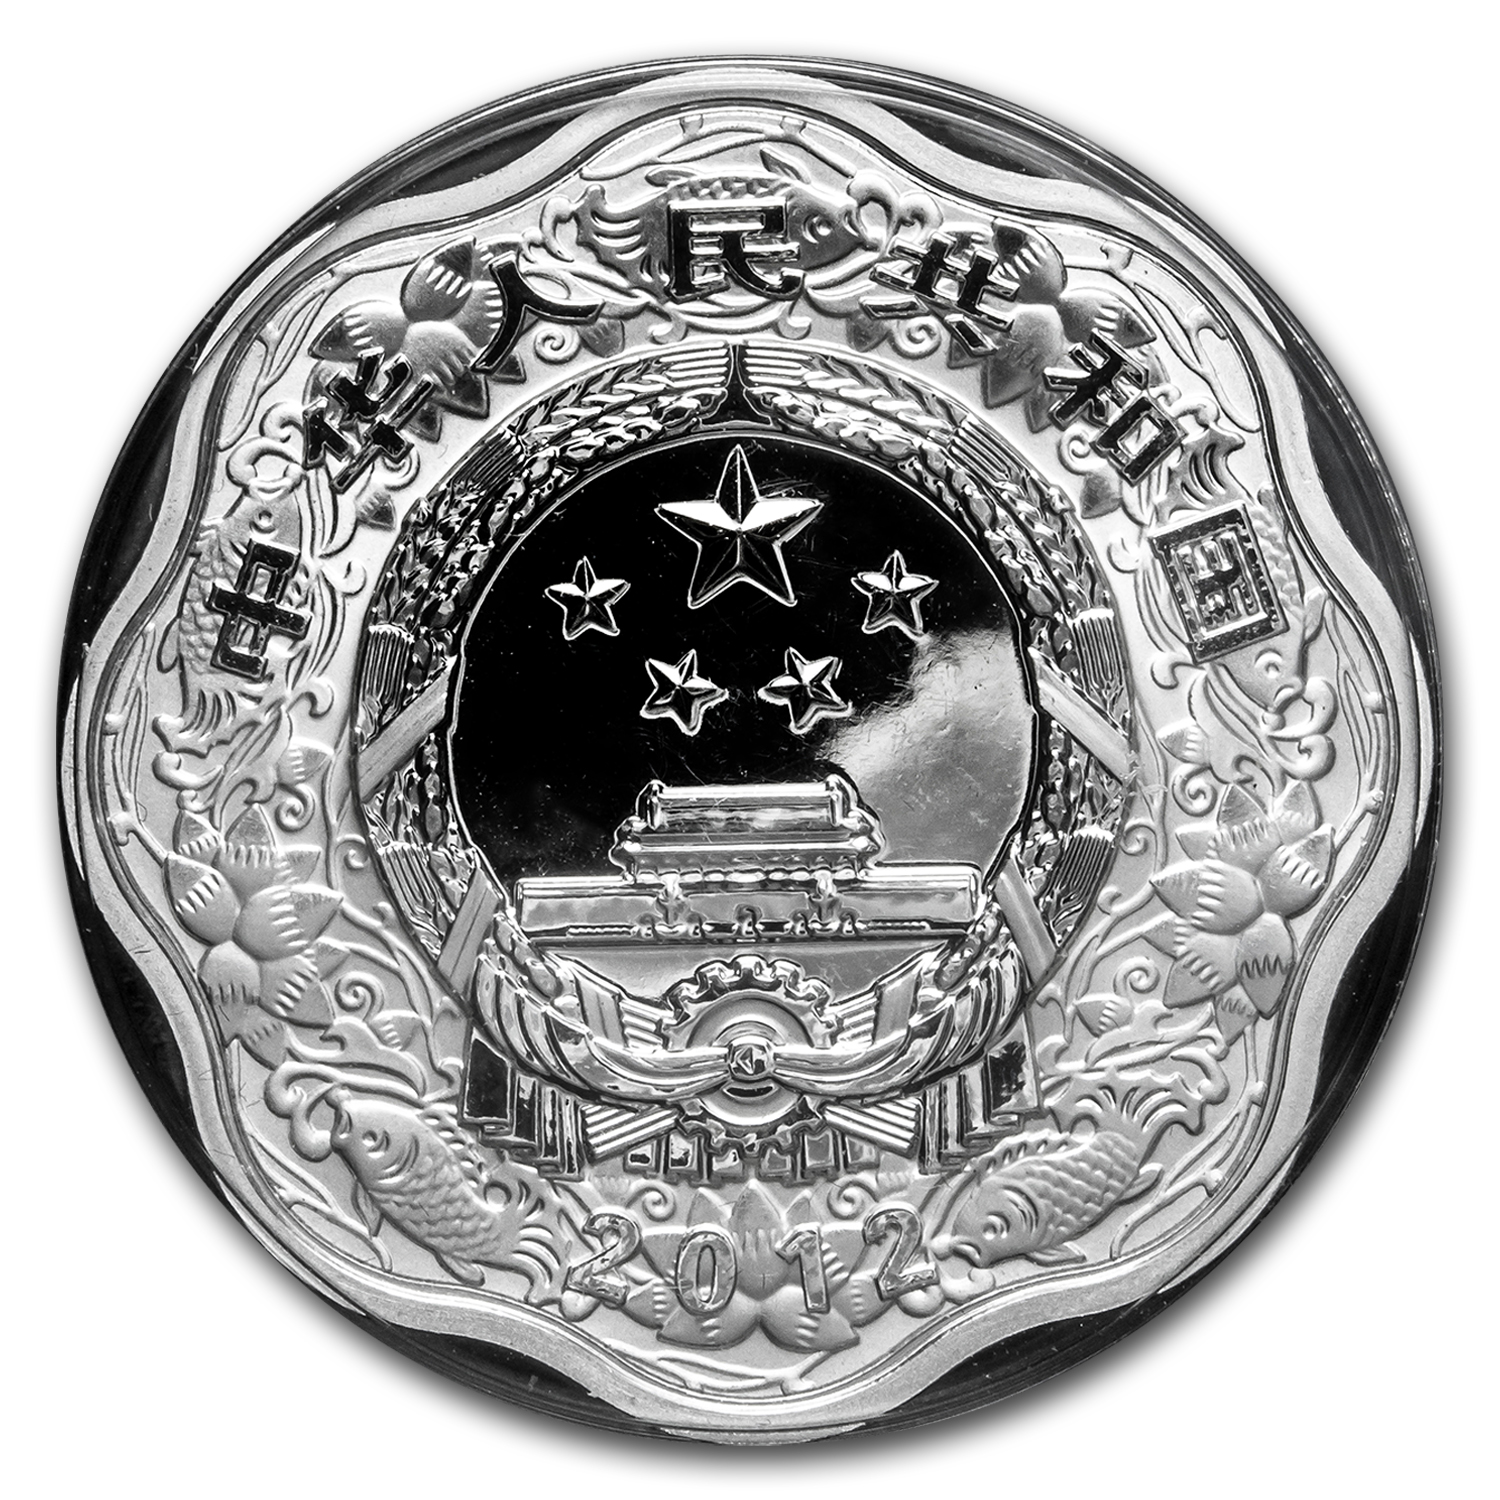 2012 Year of the Dragon - 1 oz Silver - Flower Coin (w/Box & CoA)